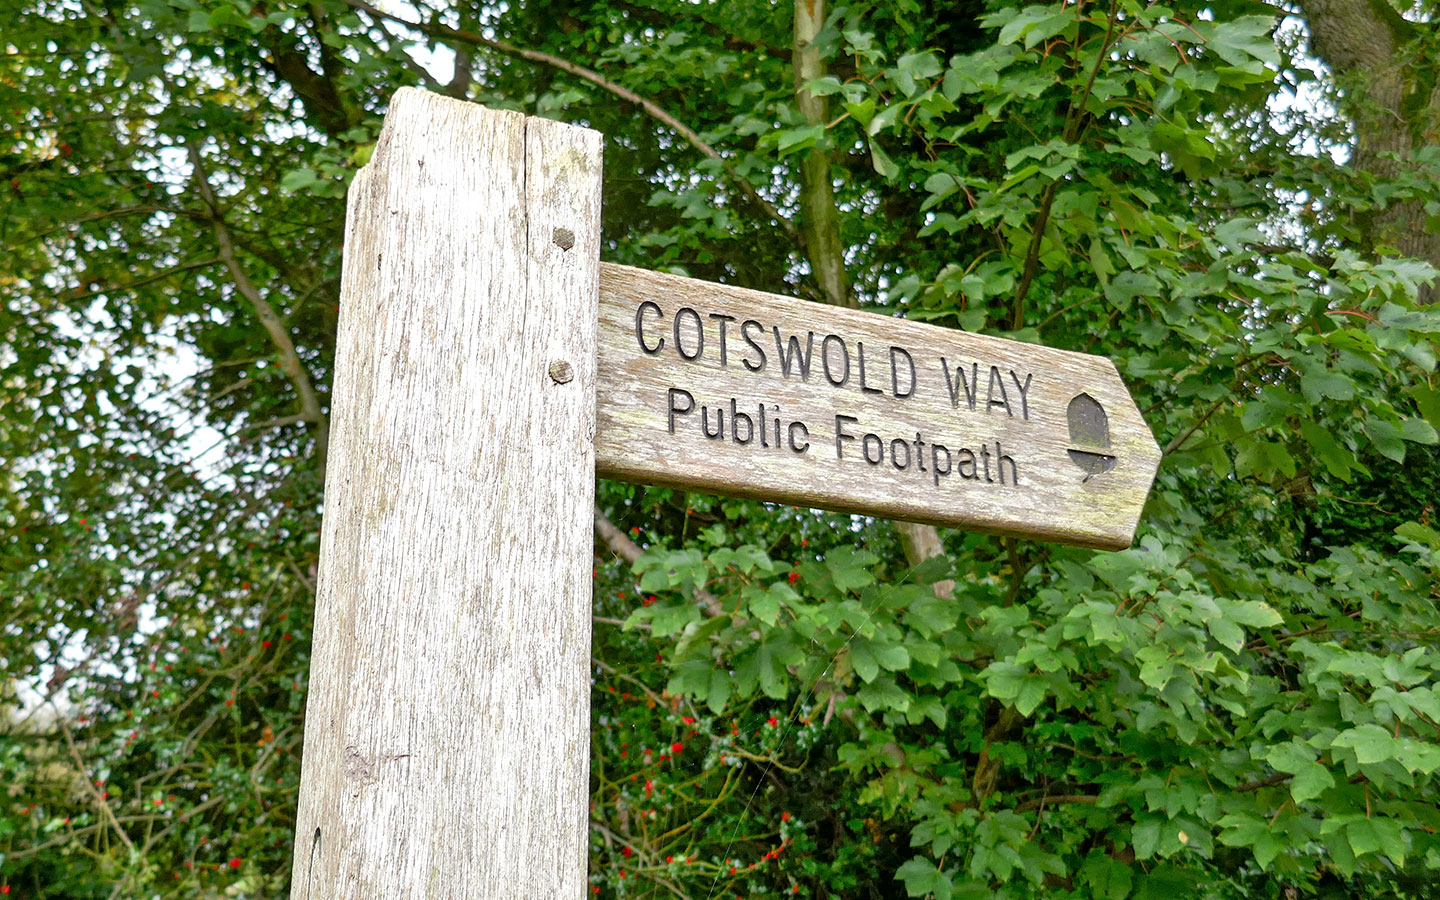 Cotswold Way signpost